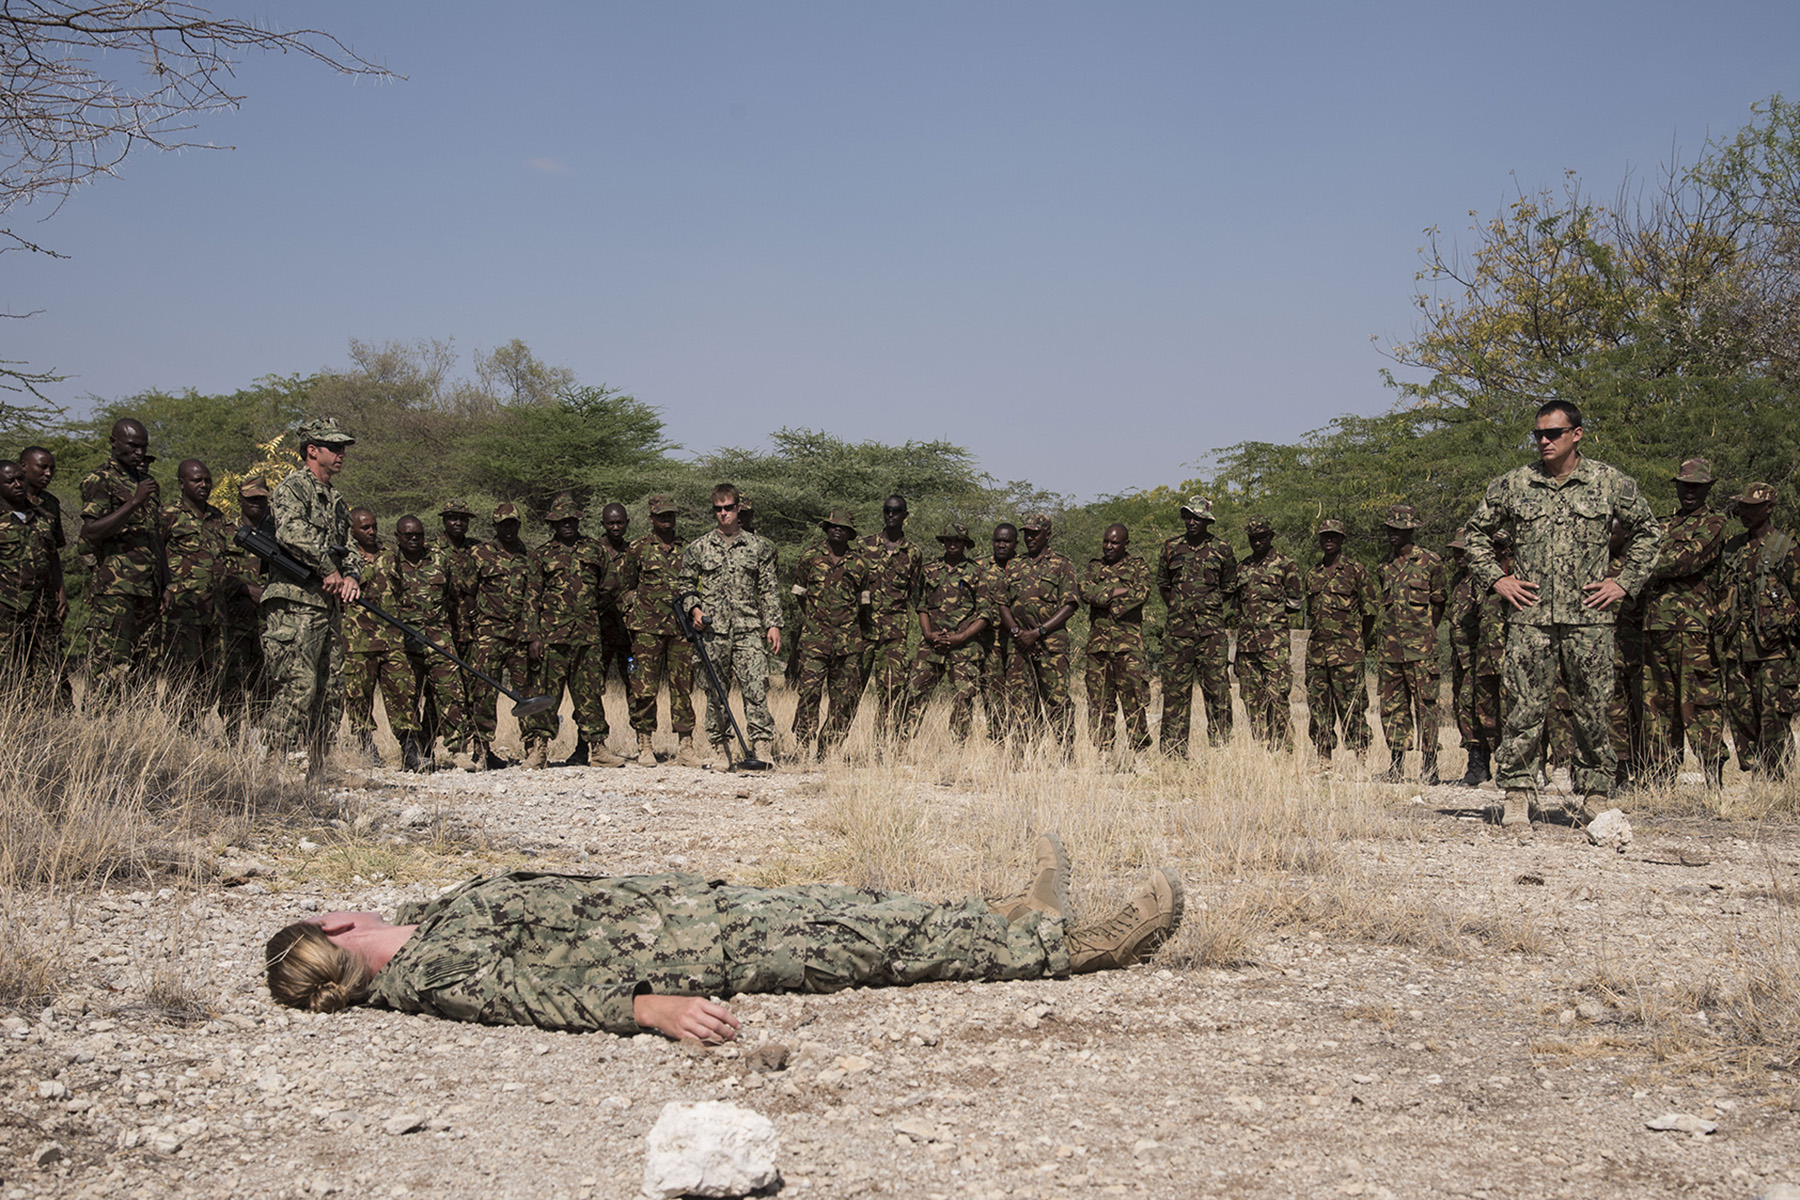 KENYA- U.S. Navy Sailors from Task Force Sparta, assigned to Combined Joint Task Force-Horn of Africa, demonstrate the final portion of the tactical combat medical training to Kenyan Defense Force combat engineers during Deliberate Kindle 2016, Sept. 15, at a Kenyan training facility. The medical training was just one portion of the four-week course designed to give Humanitarian Mine Action training to approximately 53 KDF soldiers and officers to prepare them for future deployments with the African Union Mission in Somalia. (U.S. Air Force photo by Staff Sgt. Tiffany DeNault)